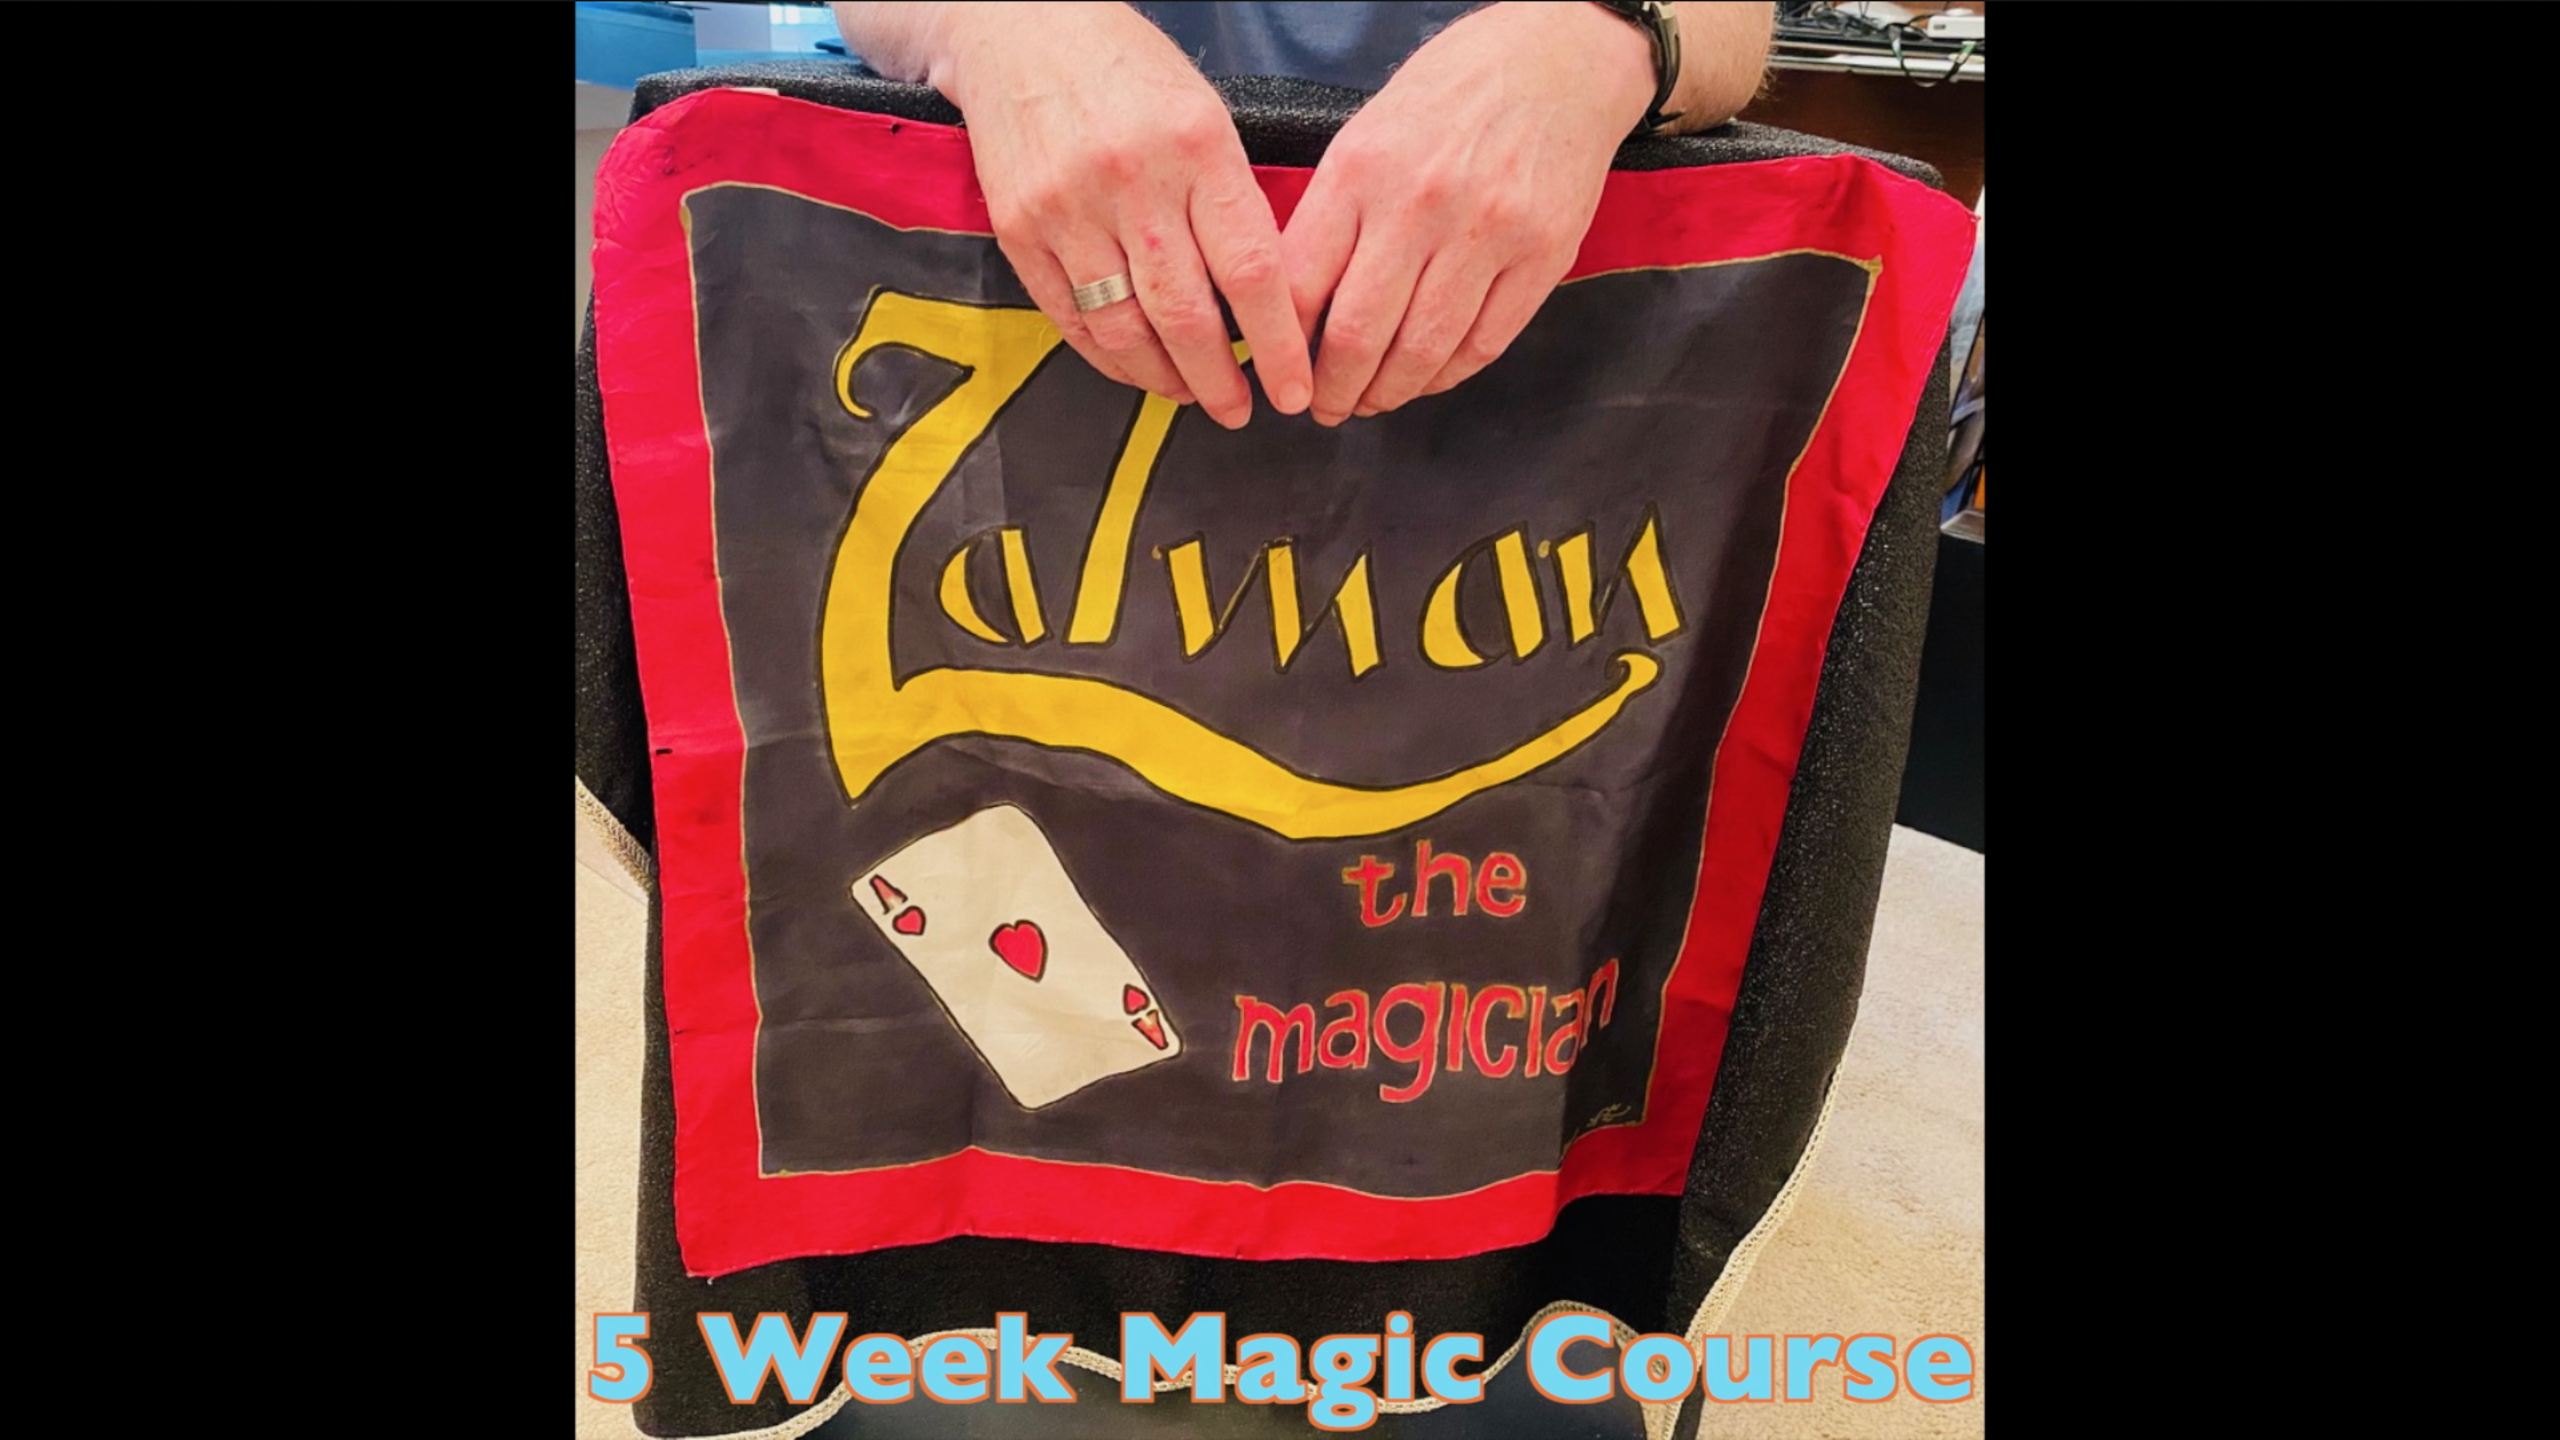 Zalman the Magician - 5 Week Magic Course